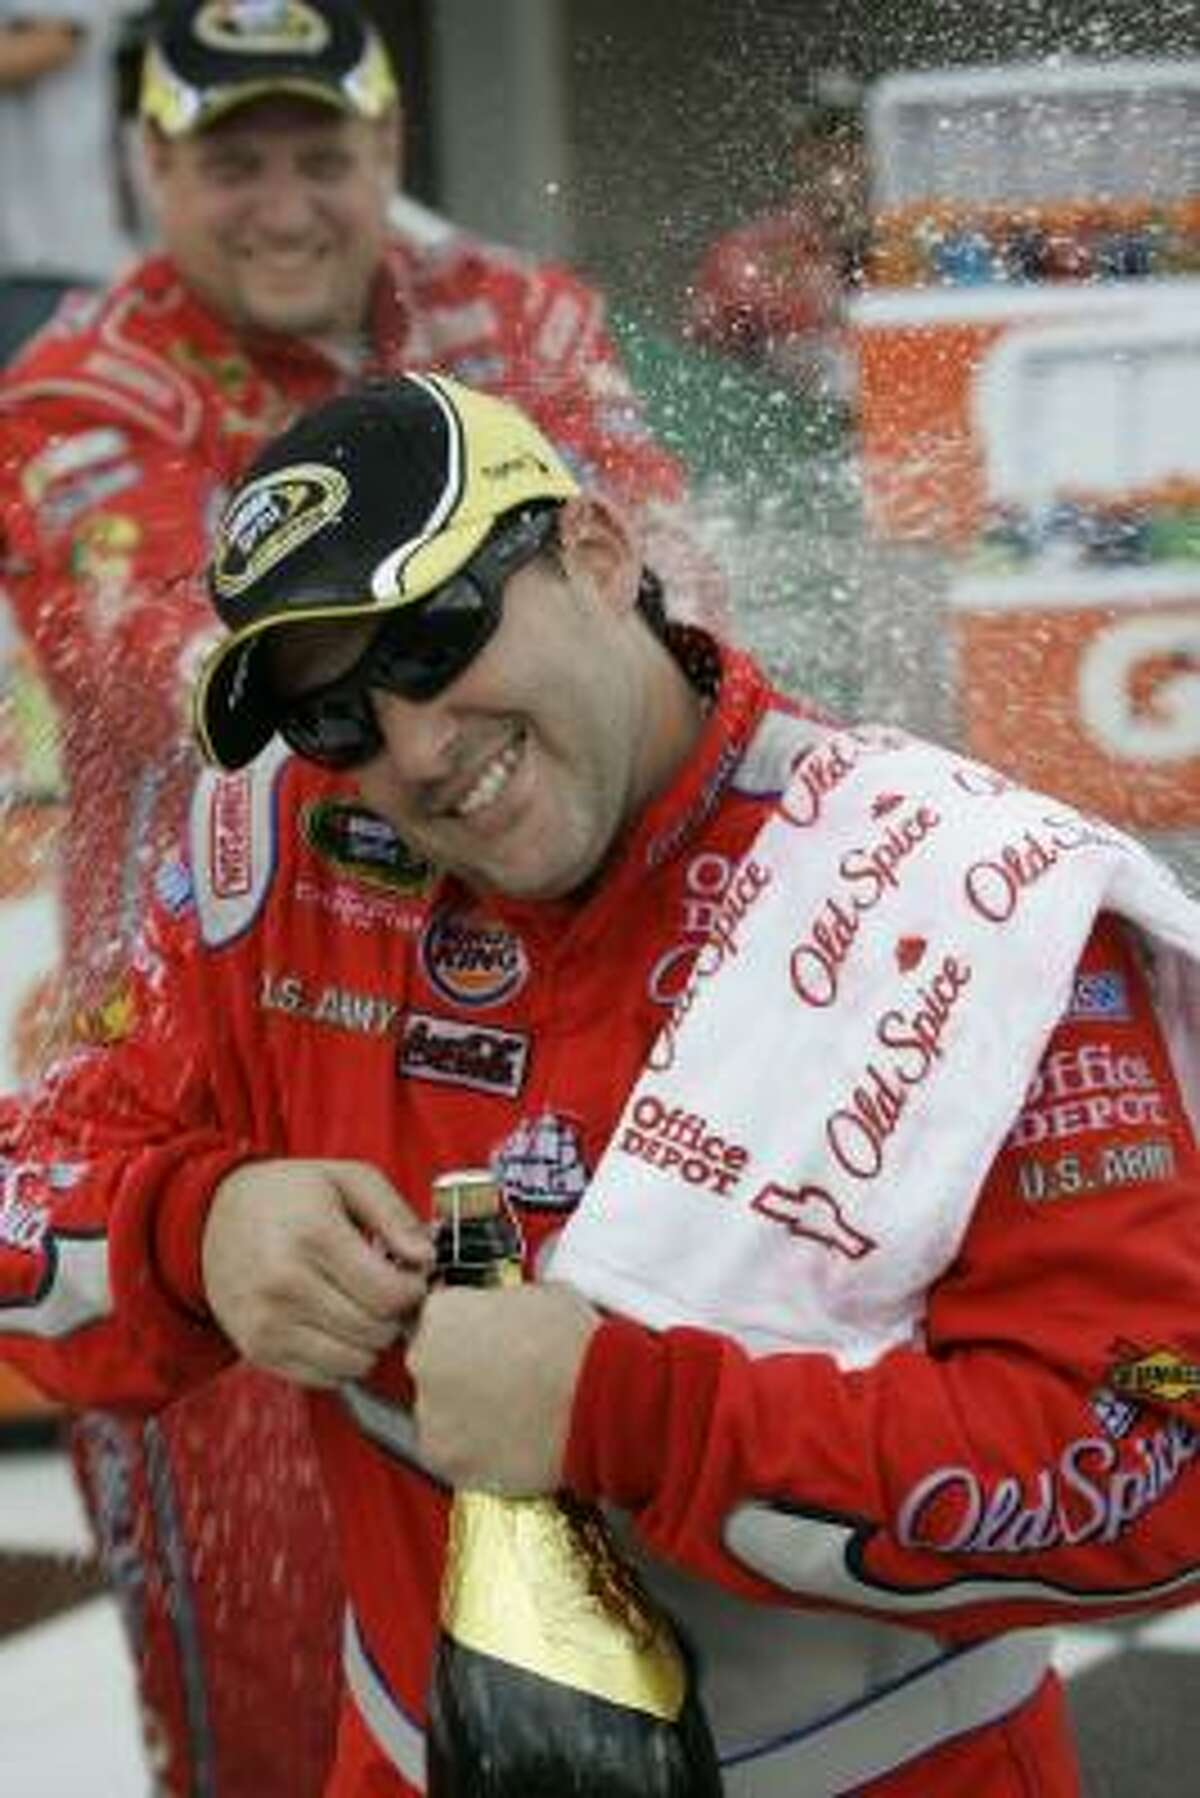 Points leader Tony Stewart tops the list with 3383 points and 18 top-10 finishes.